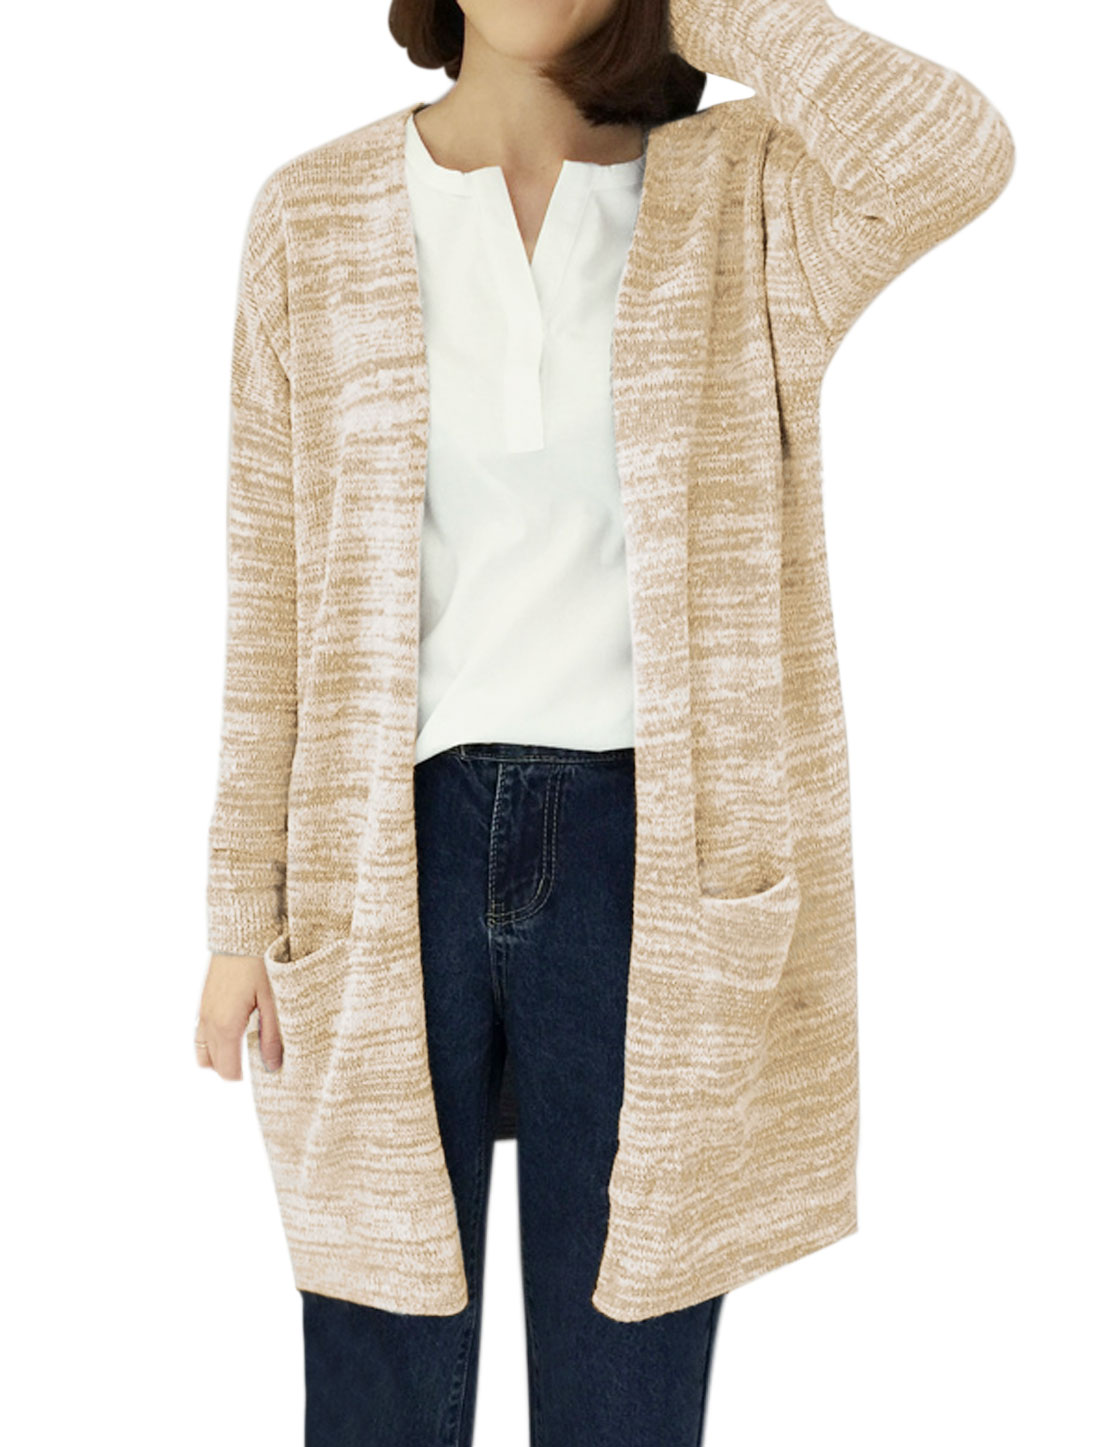 Women Front Opening Two Pockets Tunic Sweater Cardigan Beige XS